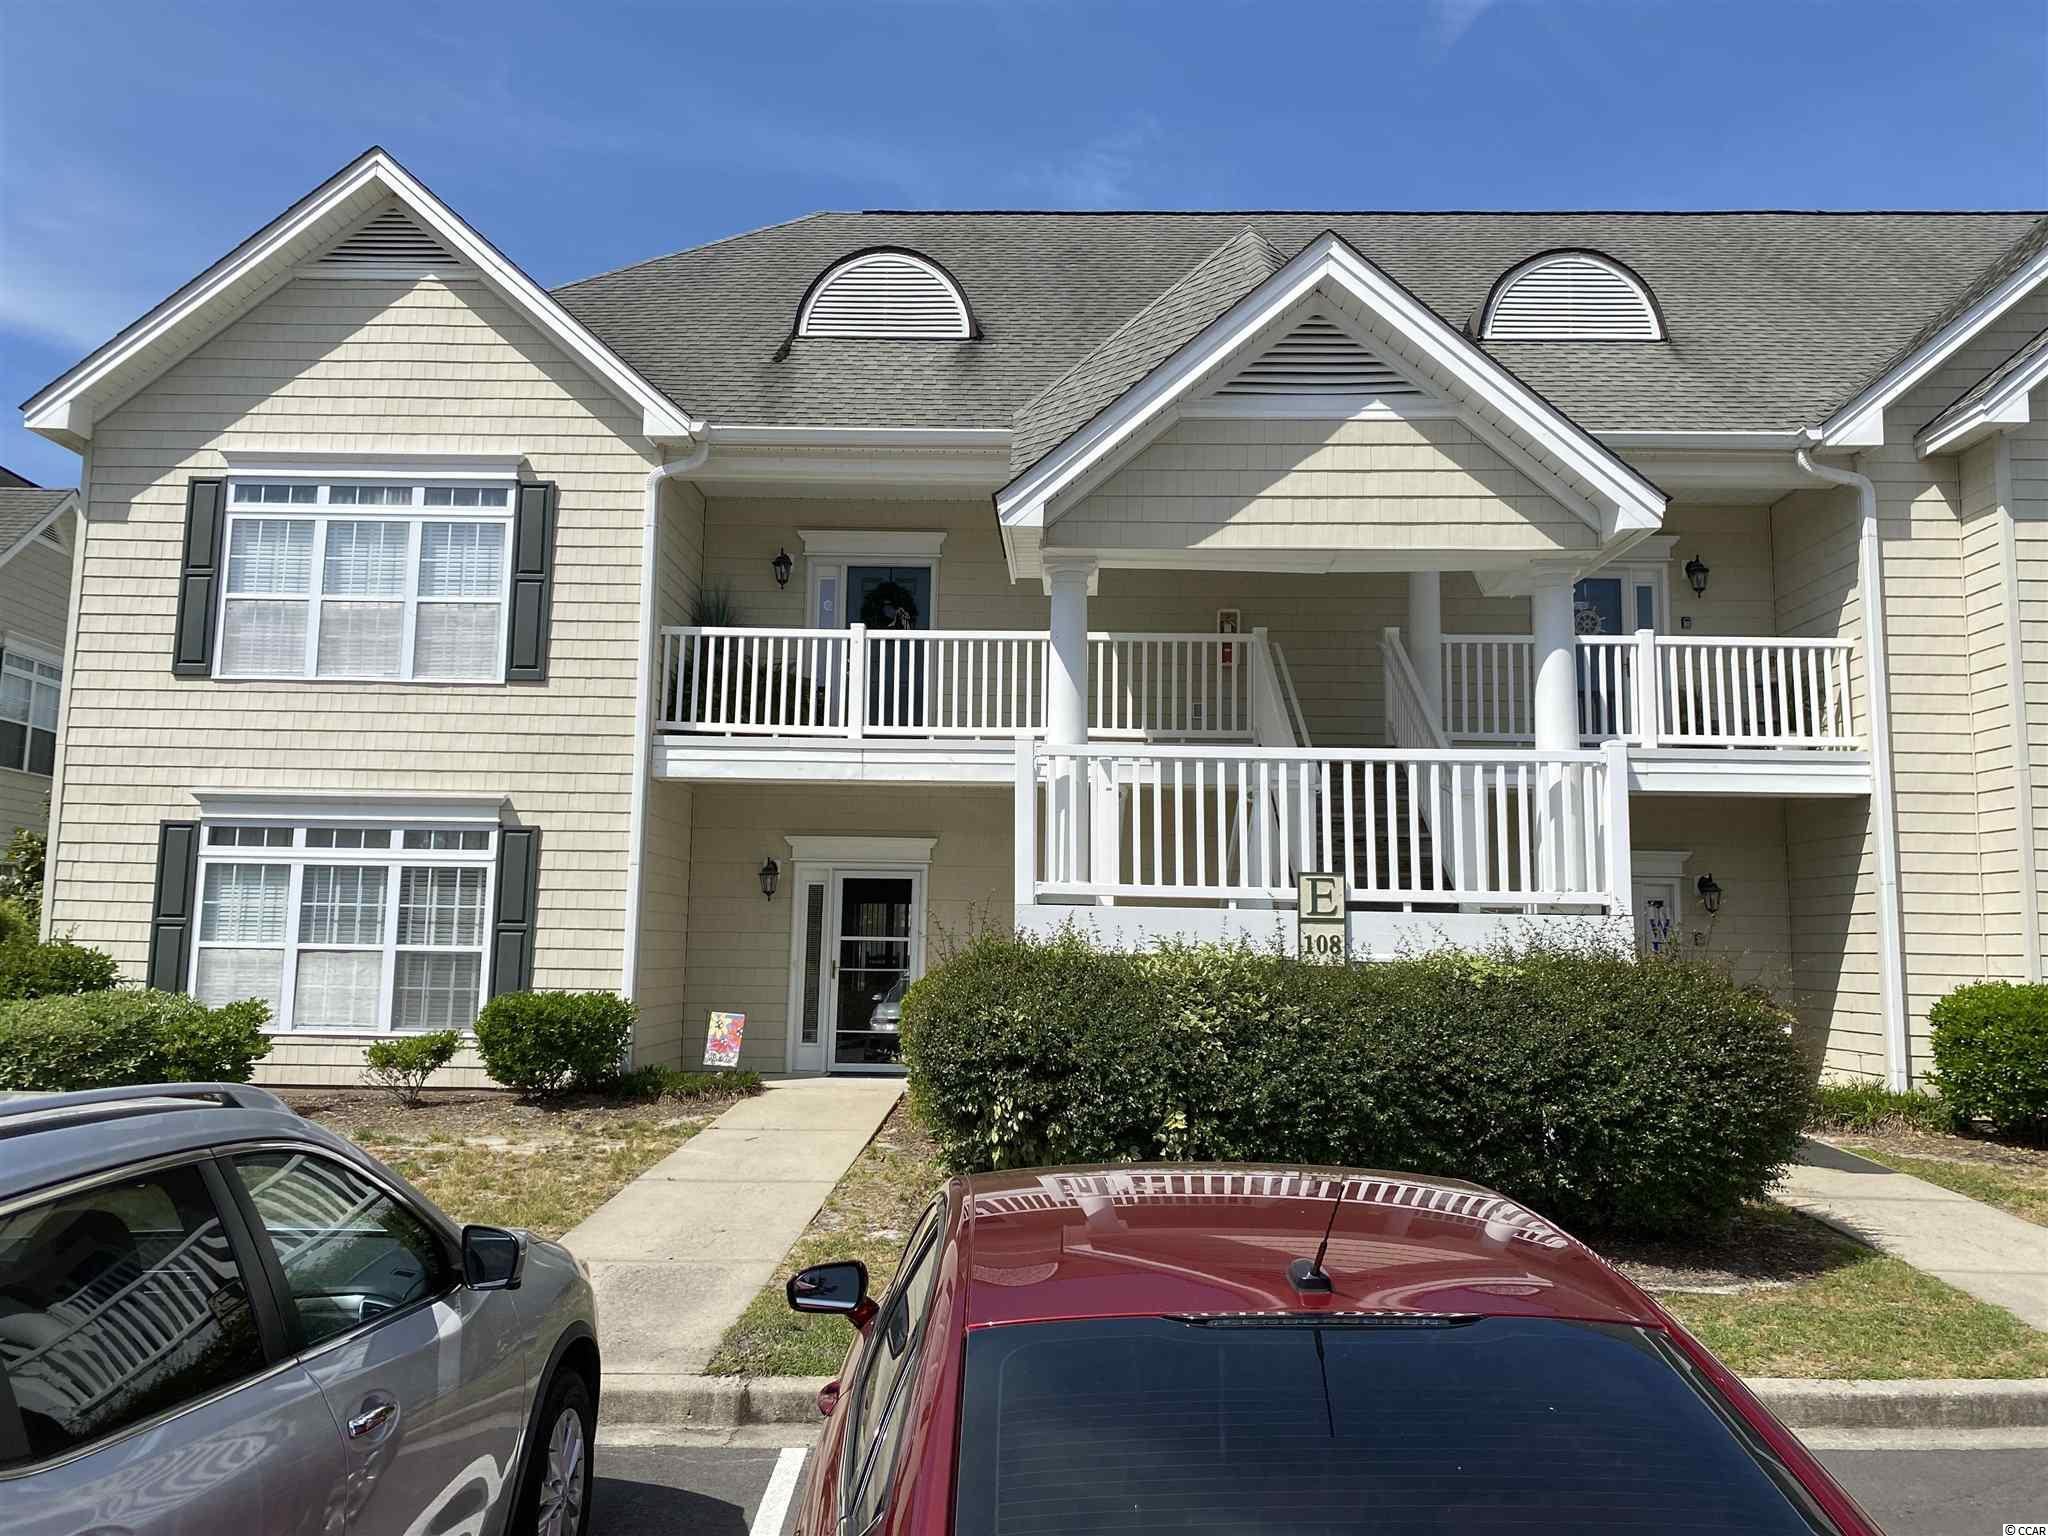 A beautiful well kept 2 bedroom and 2 bathroom condo at the Village at the Glens in Little River, SC. This is an end unit with new a new washer in 2019, new glass sliding doors being installed in May 2021, new screens in all of the windows, 2 closets in the master bedroom, pantry, garbage disposal and all white kitchen appliances. Relax on the screened in back porch that over looks the pool. The back porch also features a storage closet for all of of your beach gear.